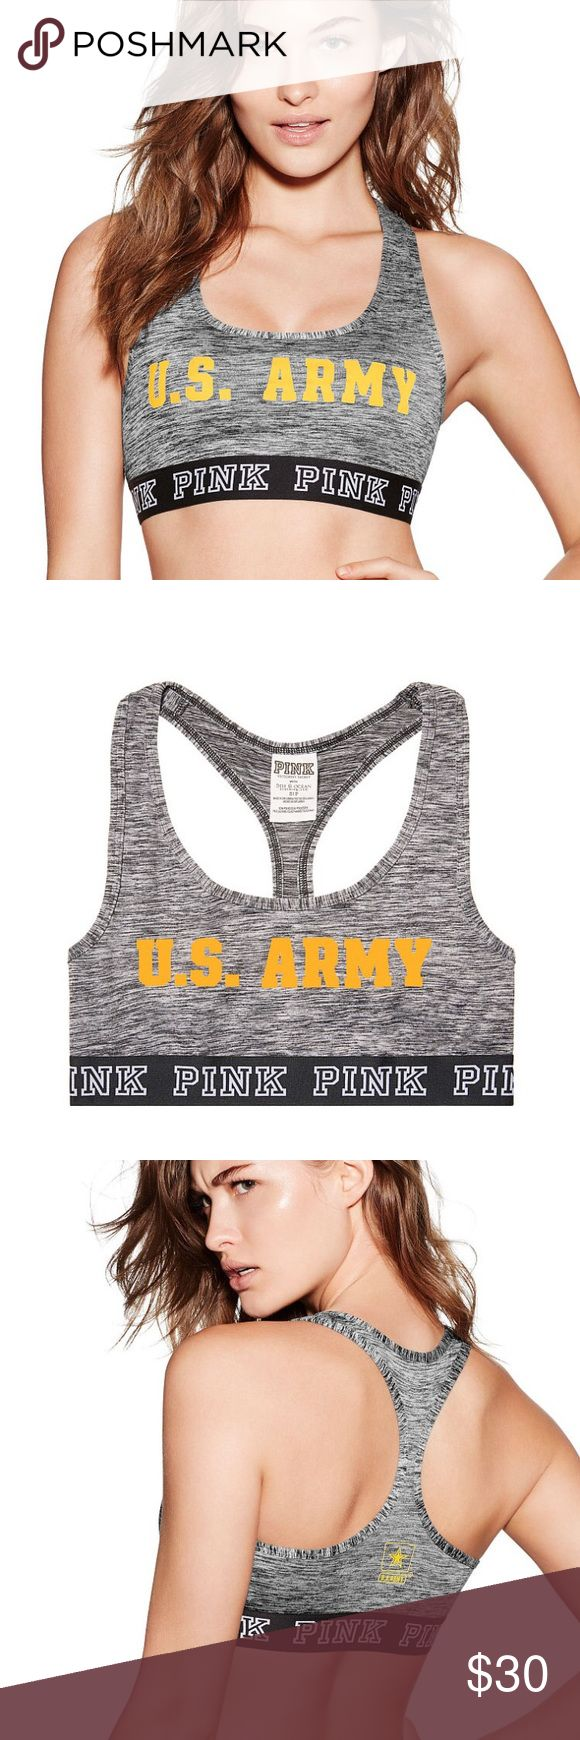 NWT Victoria's Secret PINK ARMY Logo Crop Bra NWT!!! US ARMY Sports Bra.....Victoria's Secret PINK...features collegiate graphics...banded elastic..perfect for sporty layering under your tees and hoodies! PINK Victoria's Secret Intimates & Sleepwear Bras